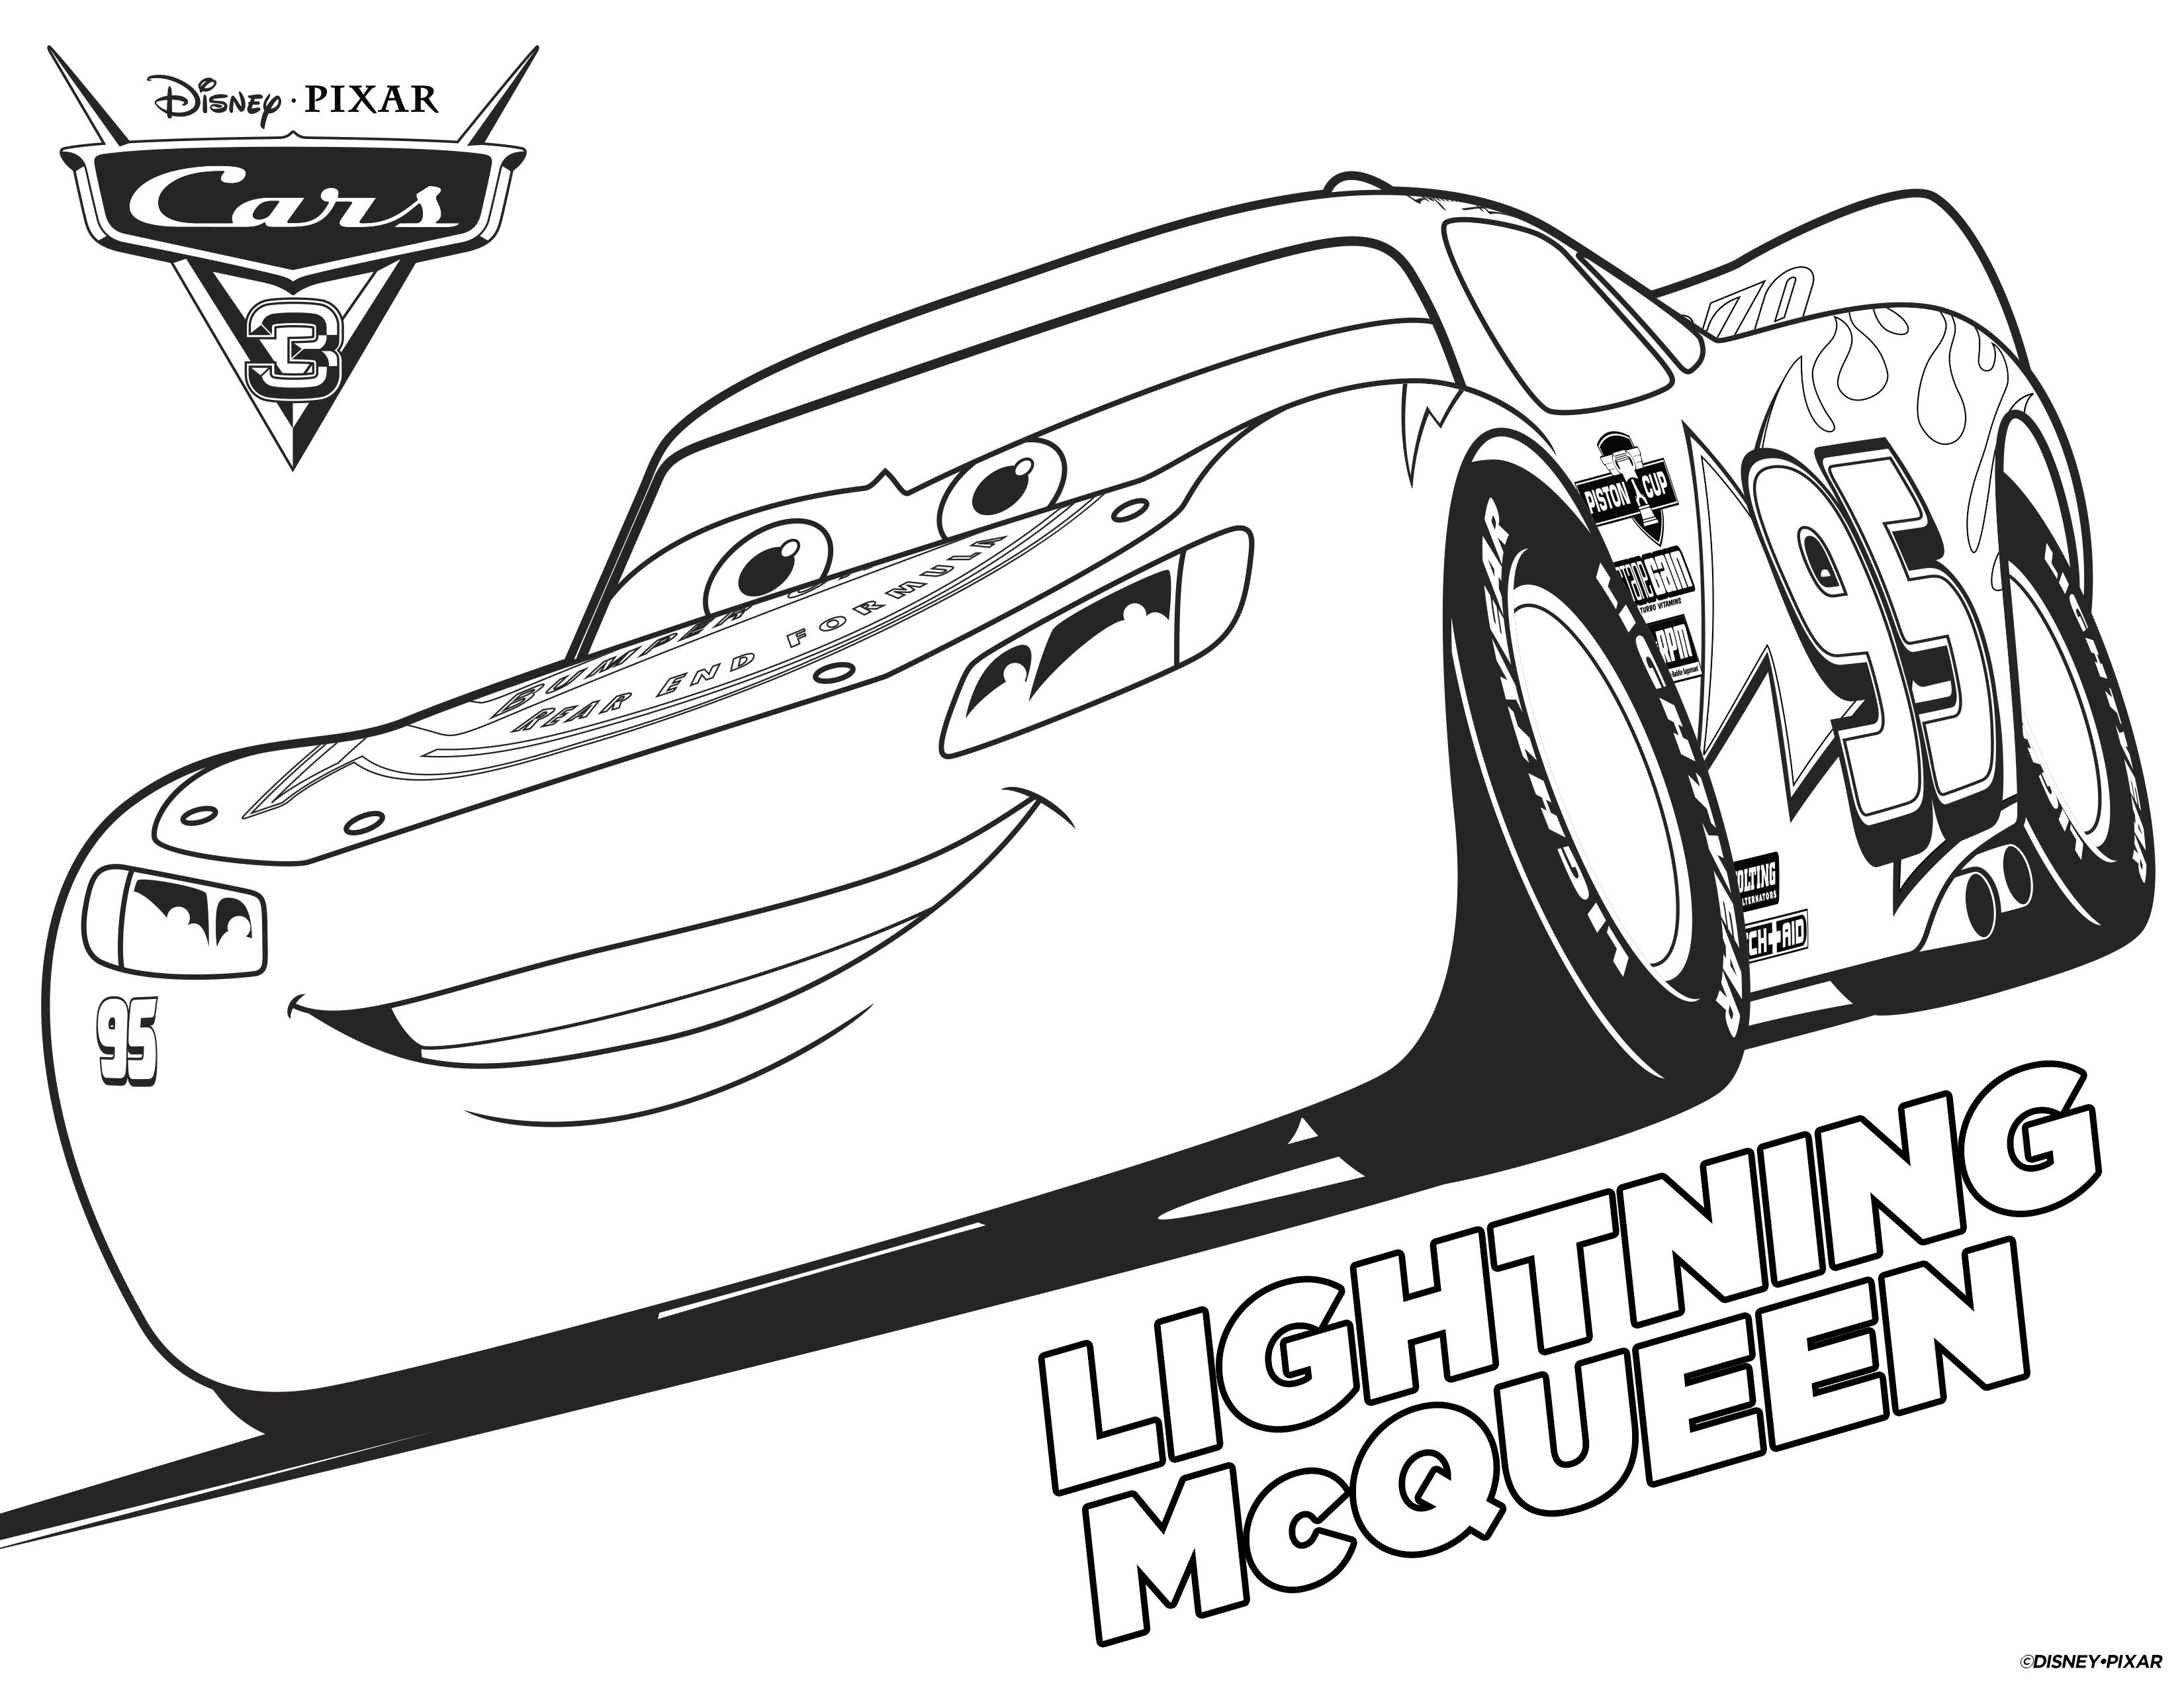 4 Disney Cars Free Printable Coloring Pages Race Car Coloring Pages Free Printable Coloring Pages Free Printable Coloring Sheets